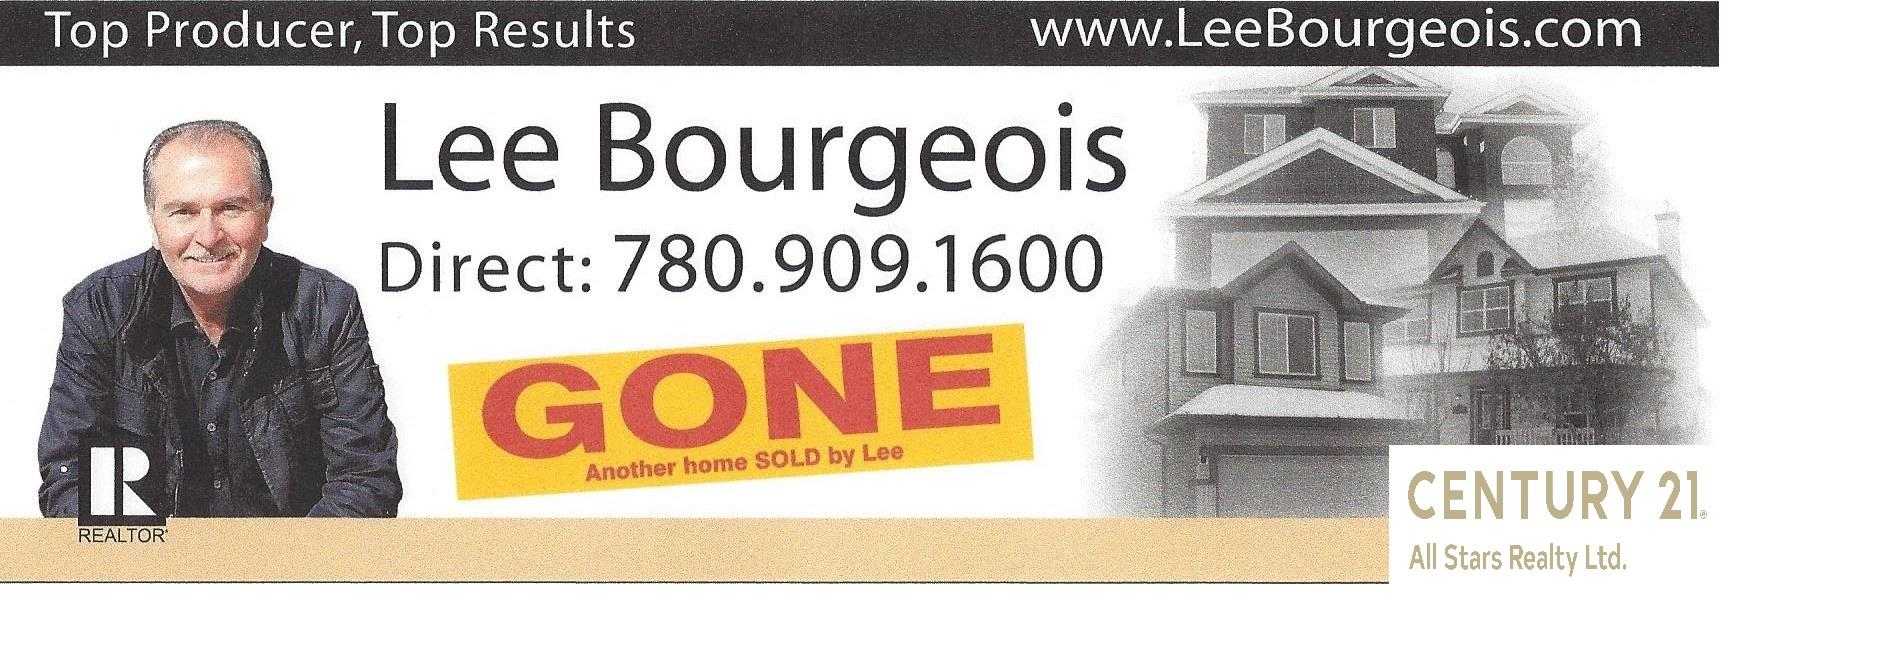 Lee Bourgeois Top Producer